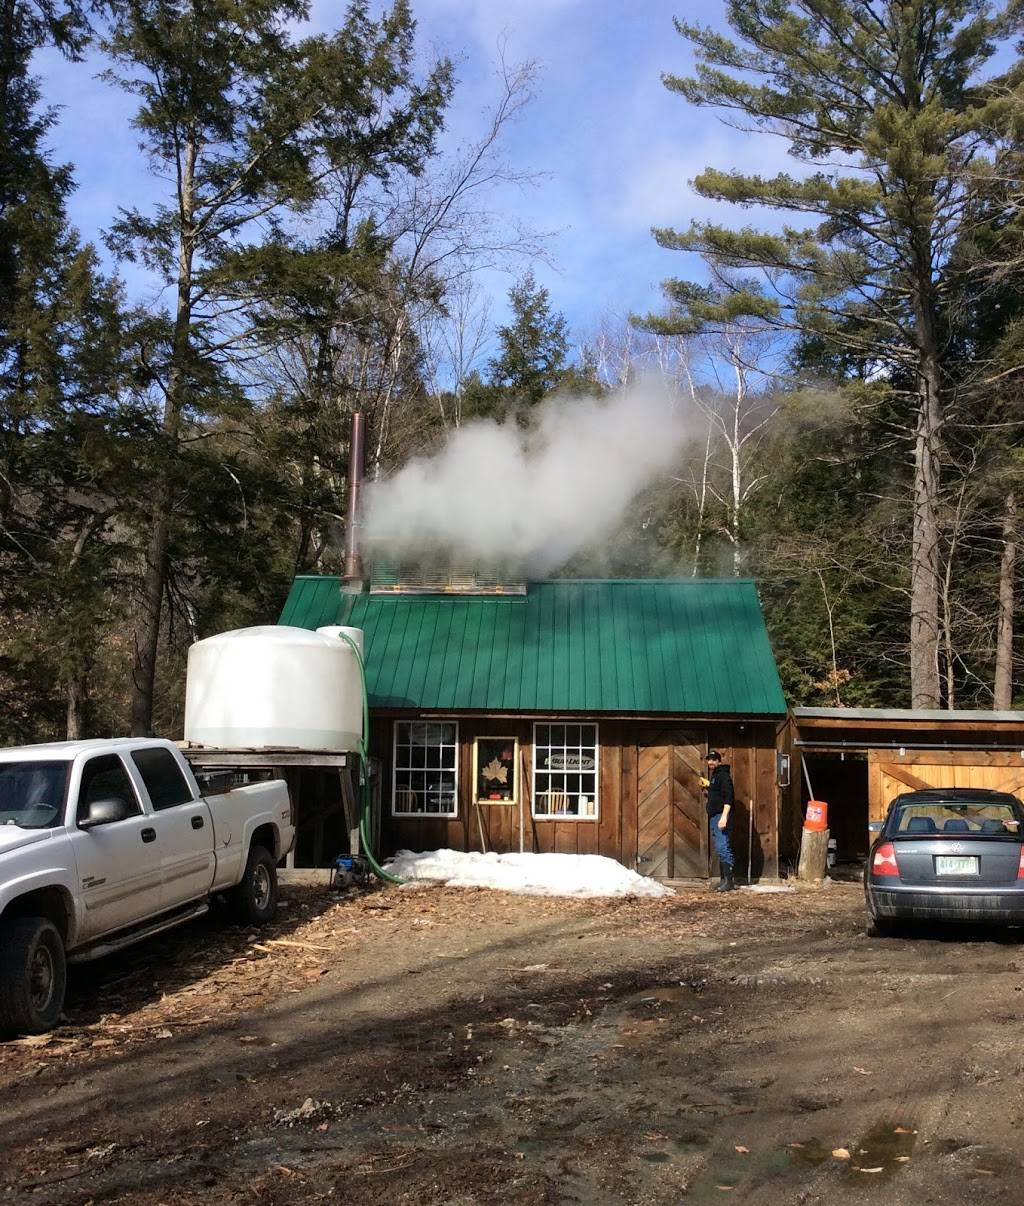 Mighty Maple Sugarhouse | restaurant | 597 Forest Rd, Alstead, NH 03602, USA | 6032048284 OR +1 603-204-8284